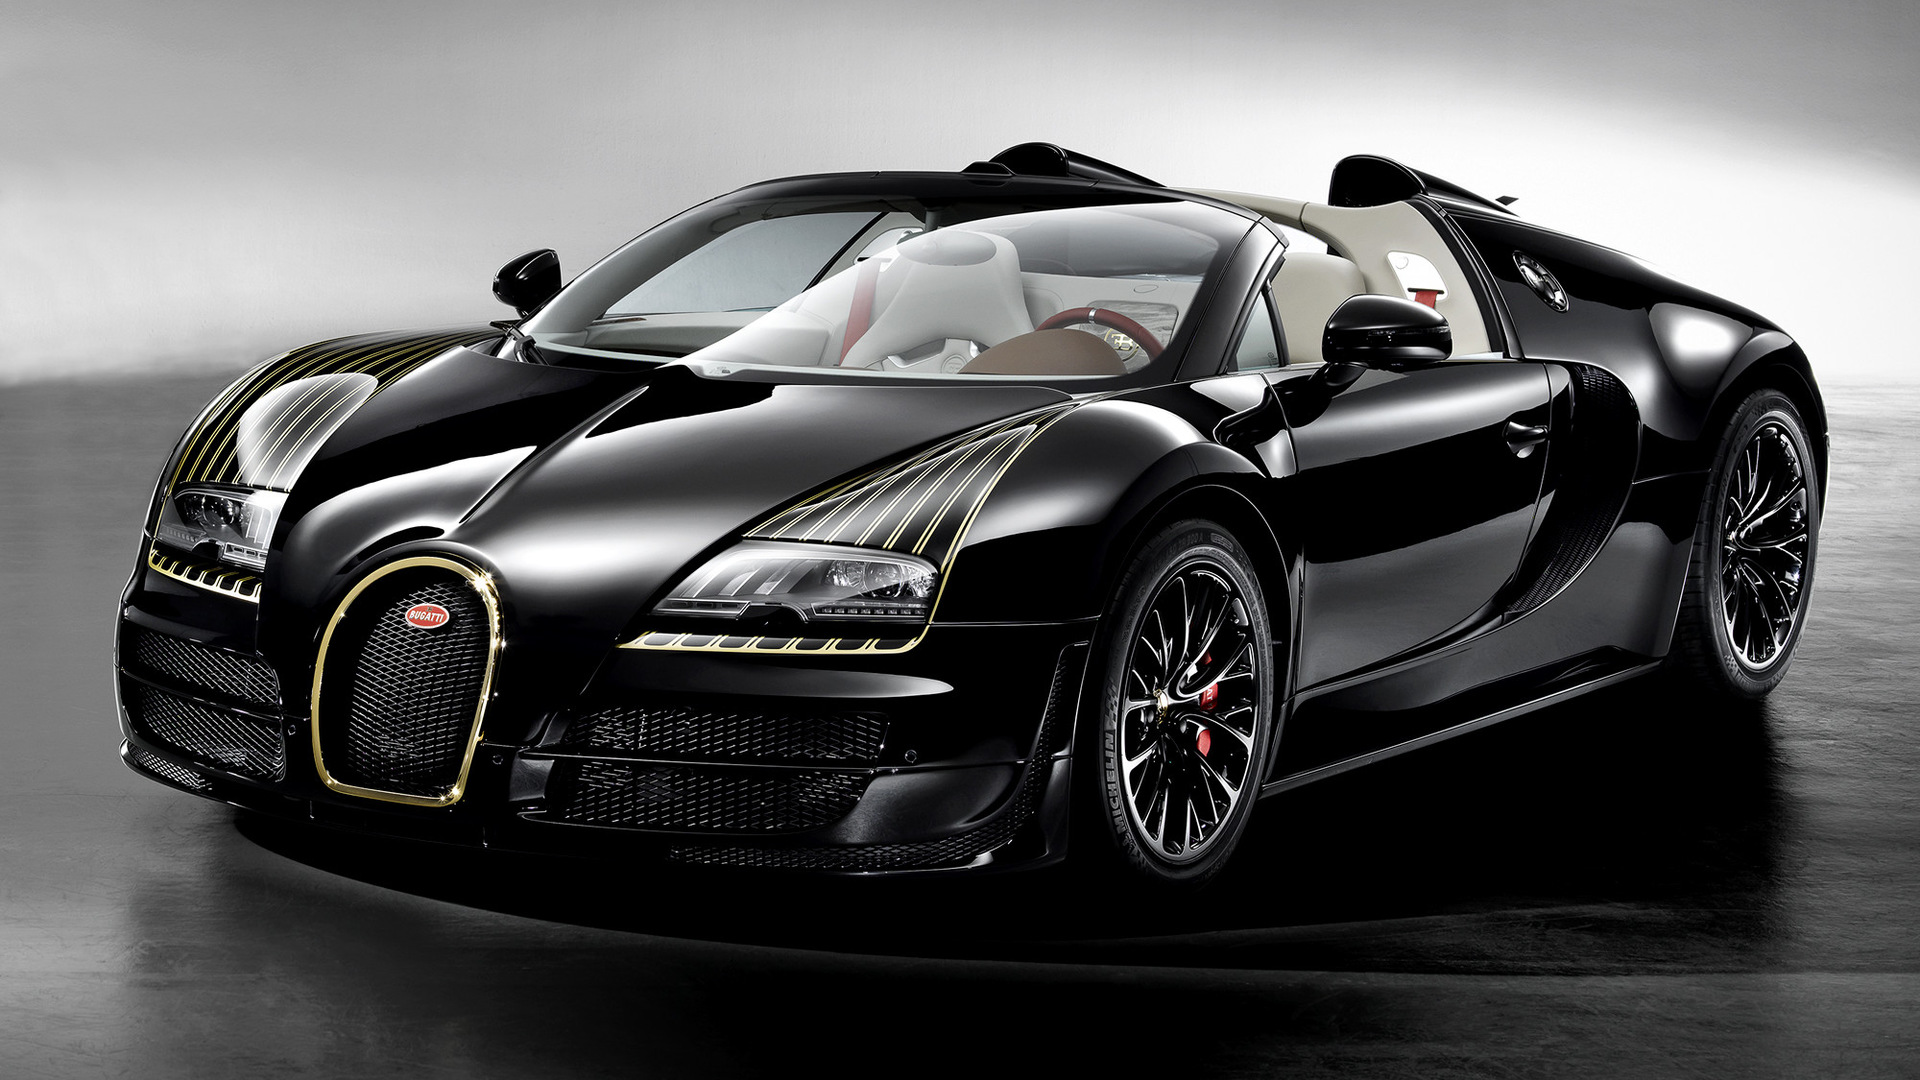 Sport Wallpaper Black: 2014 Bugatti Veyron Grand Sport Vitesse Black Bess